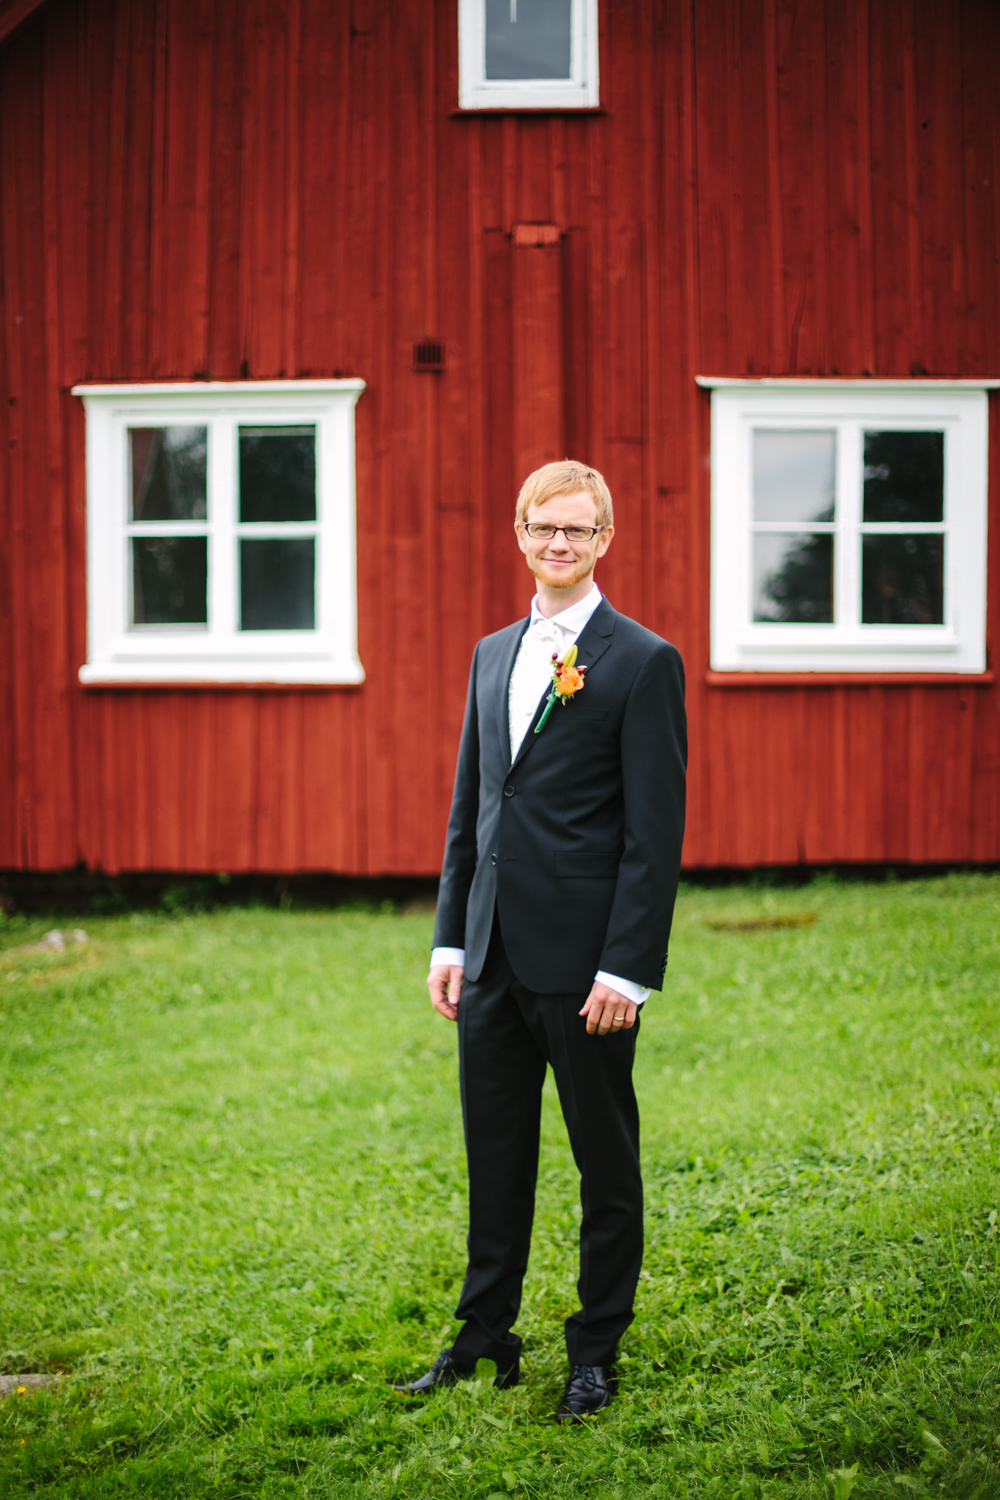 wedding_stina_johan-55.jpg